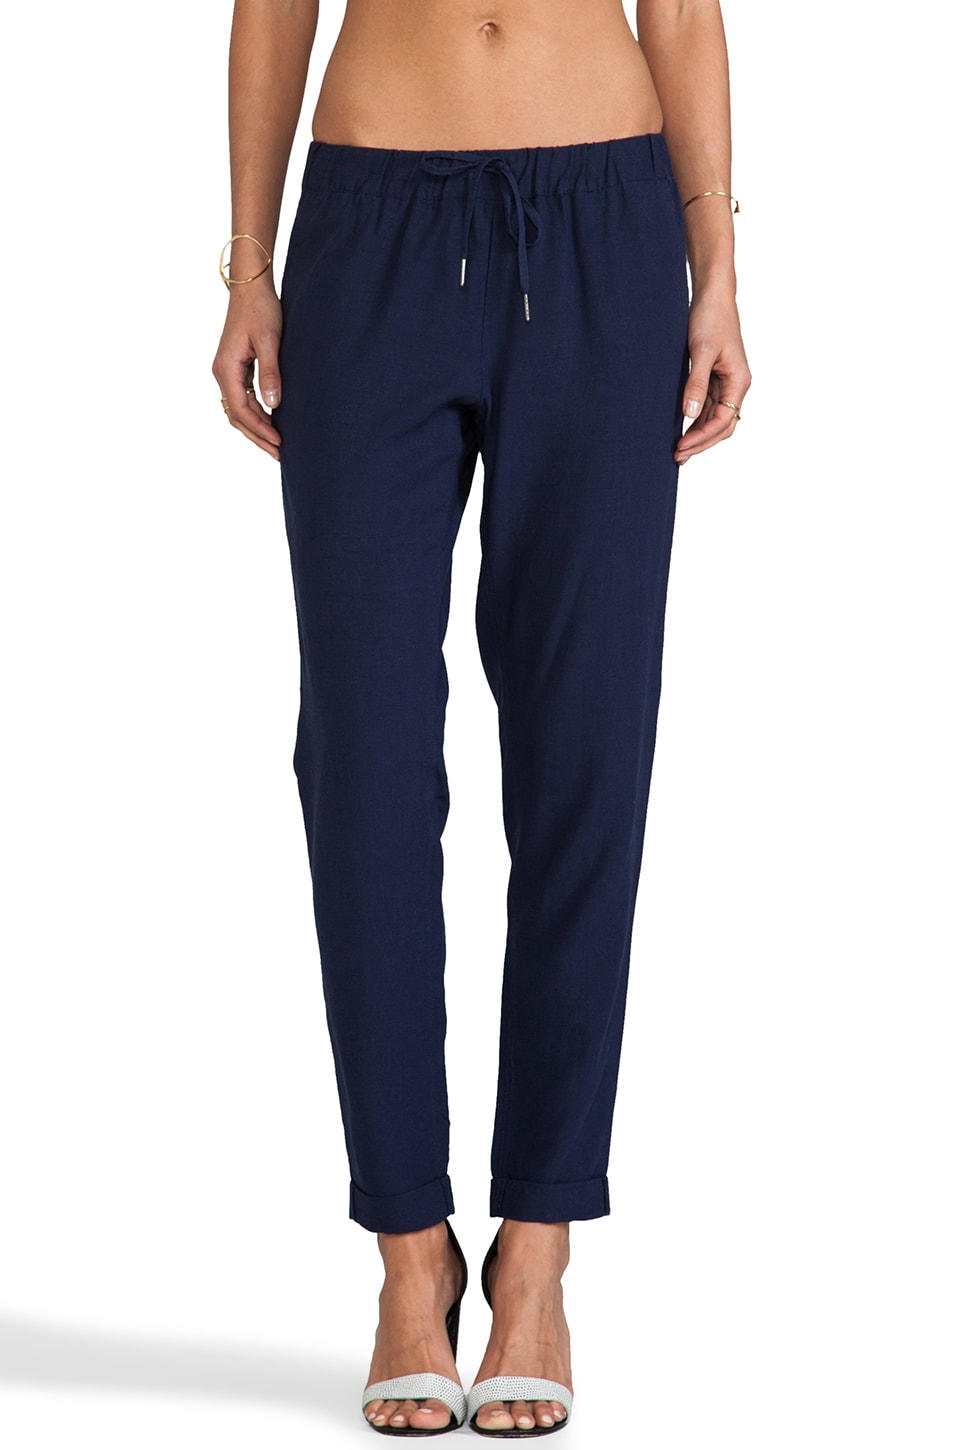 Joie Edana Pant in Dark Navy